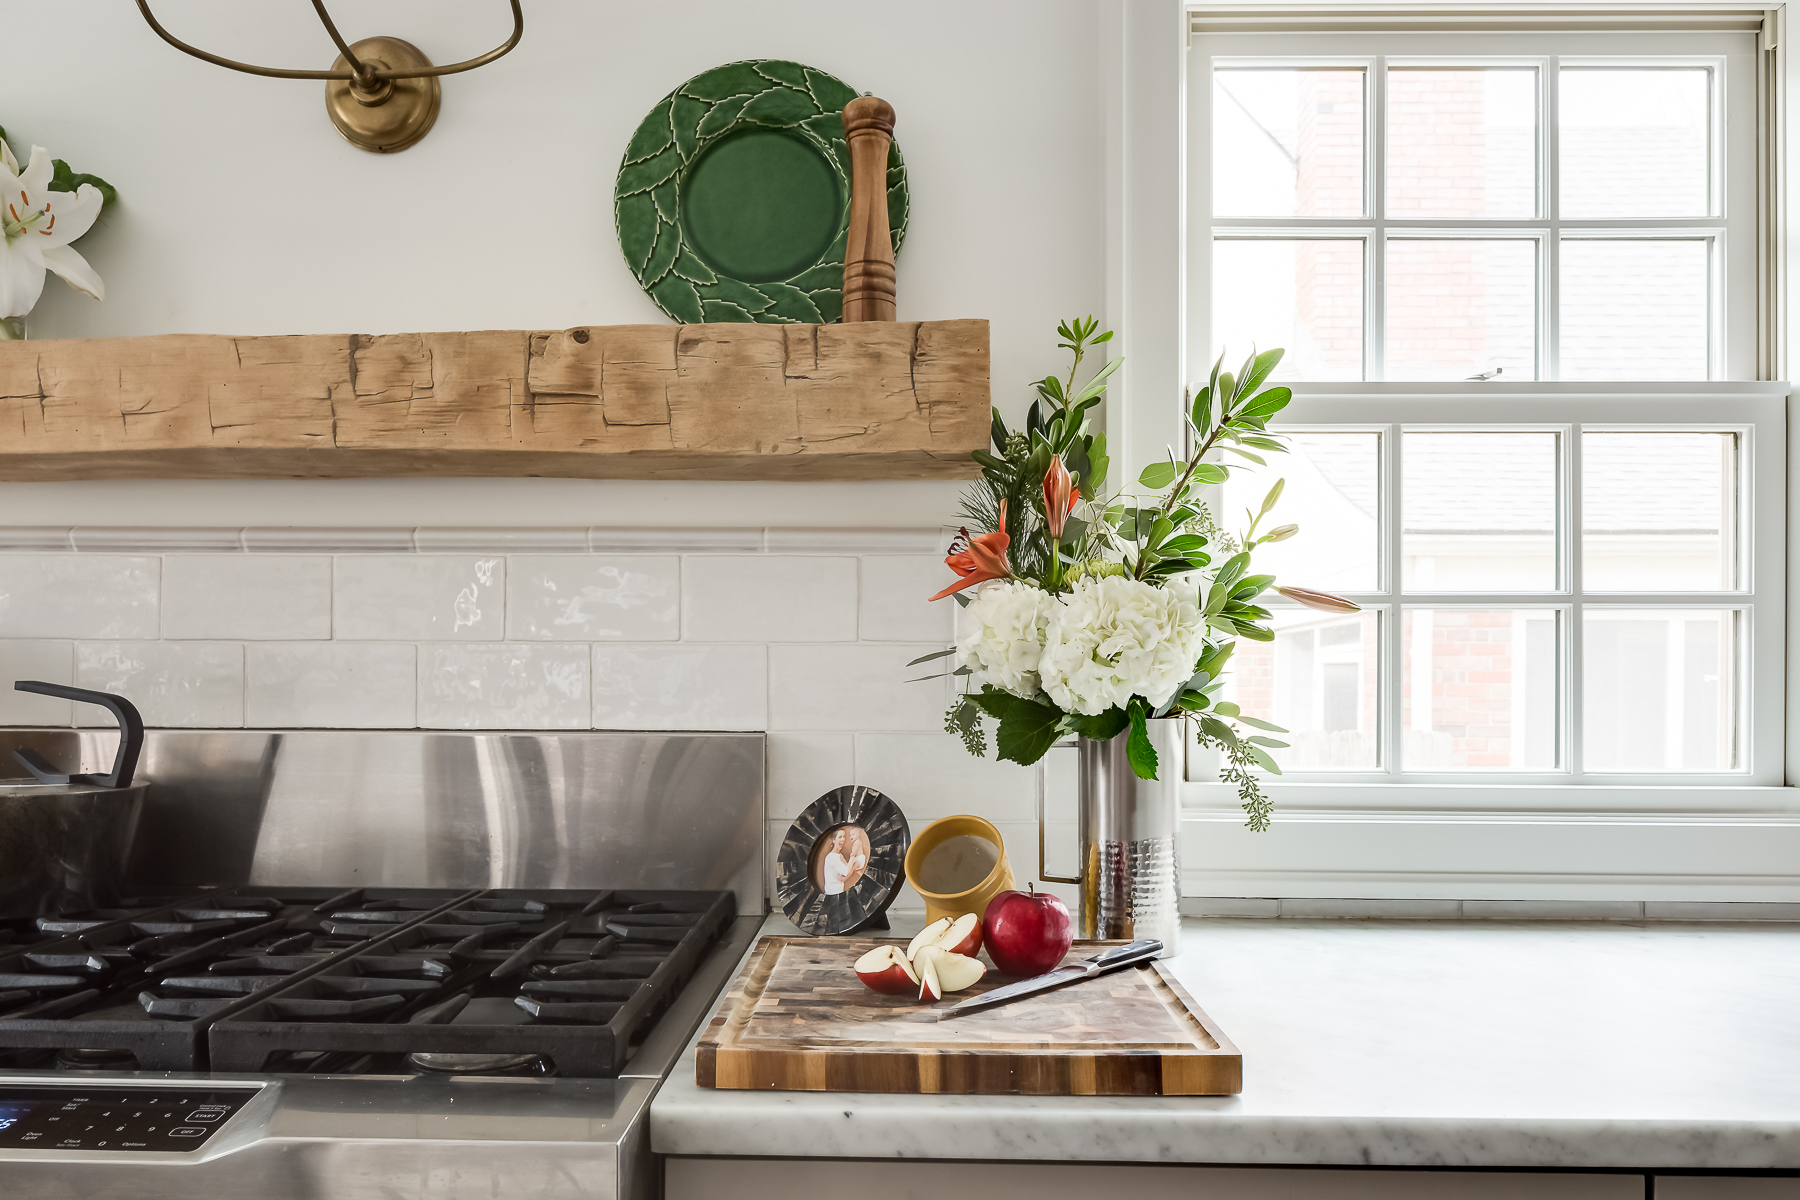 brass visual comfort wall sconce with reclaimed mantle and pro range stove in scovell wolfe kitchen